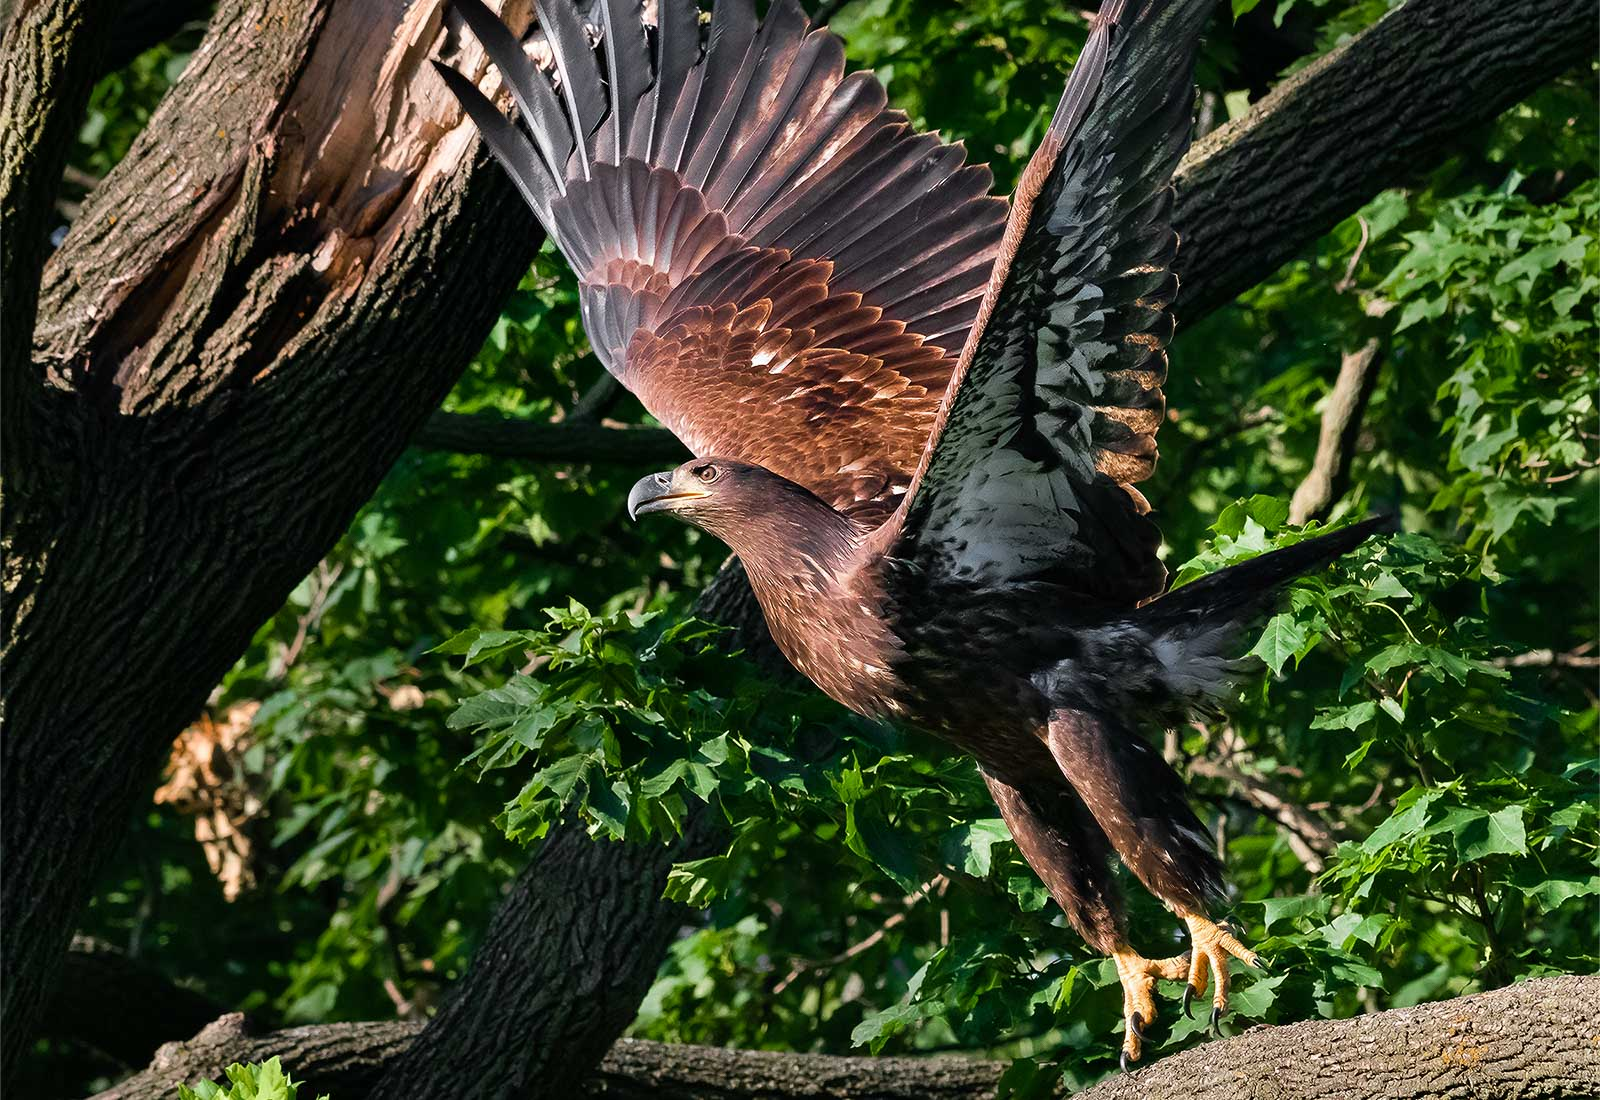 Juvenile Eagle (3-month) takes off from a branch